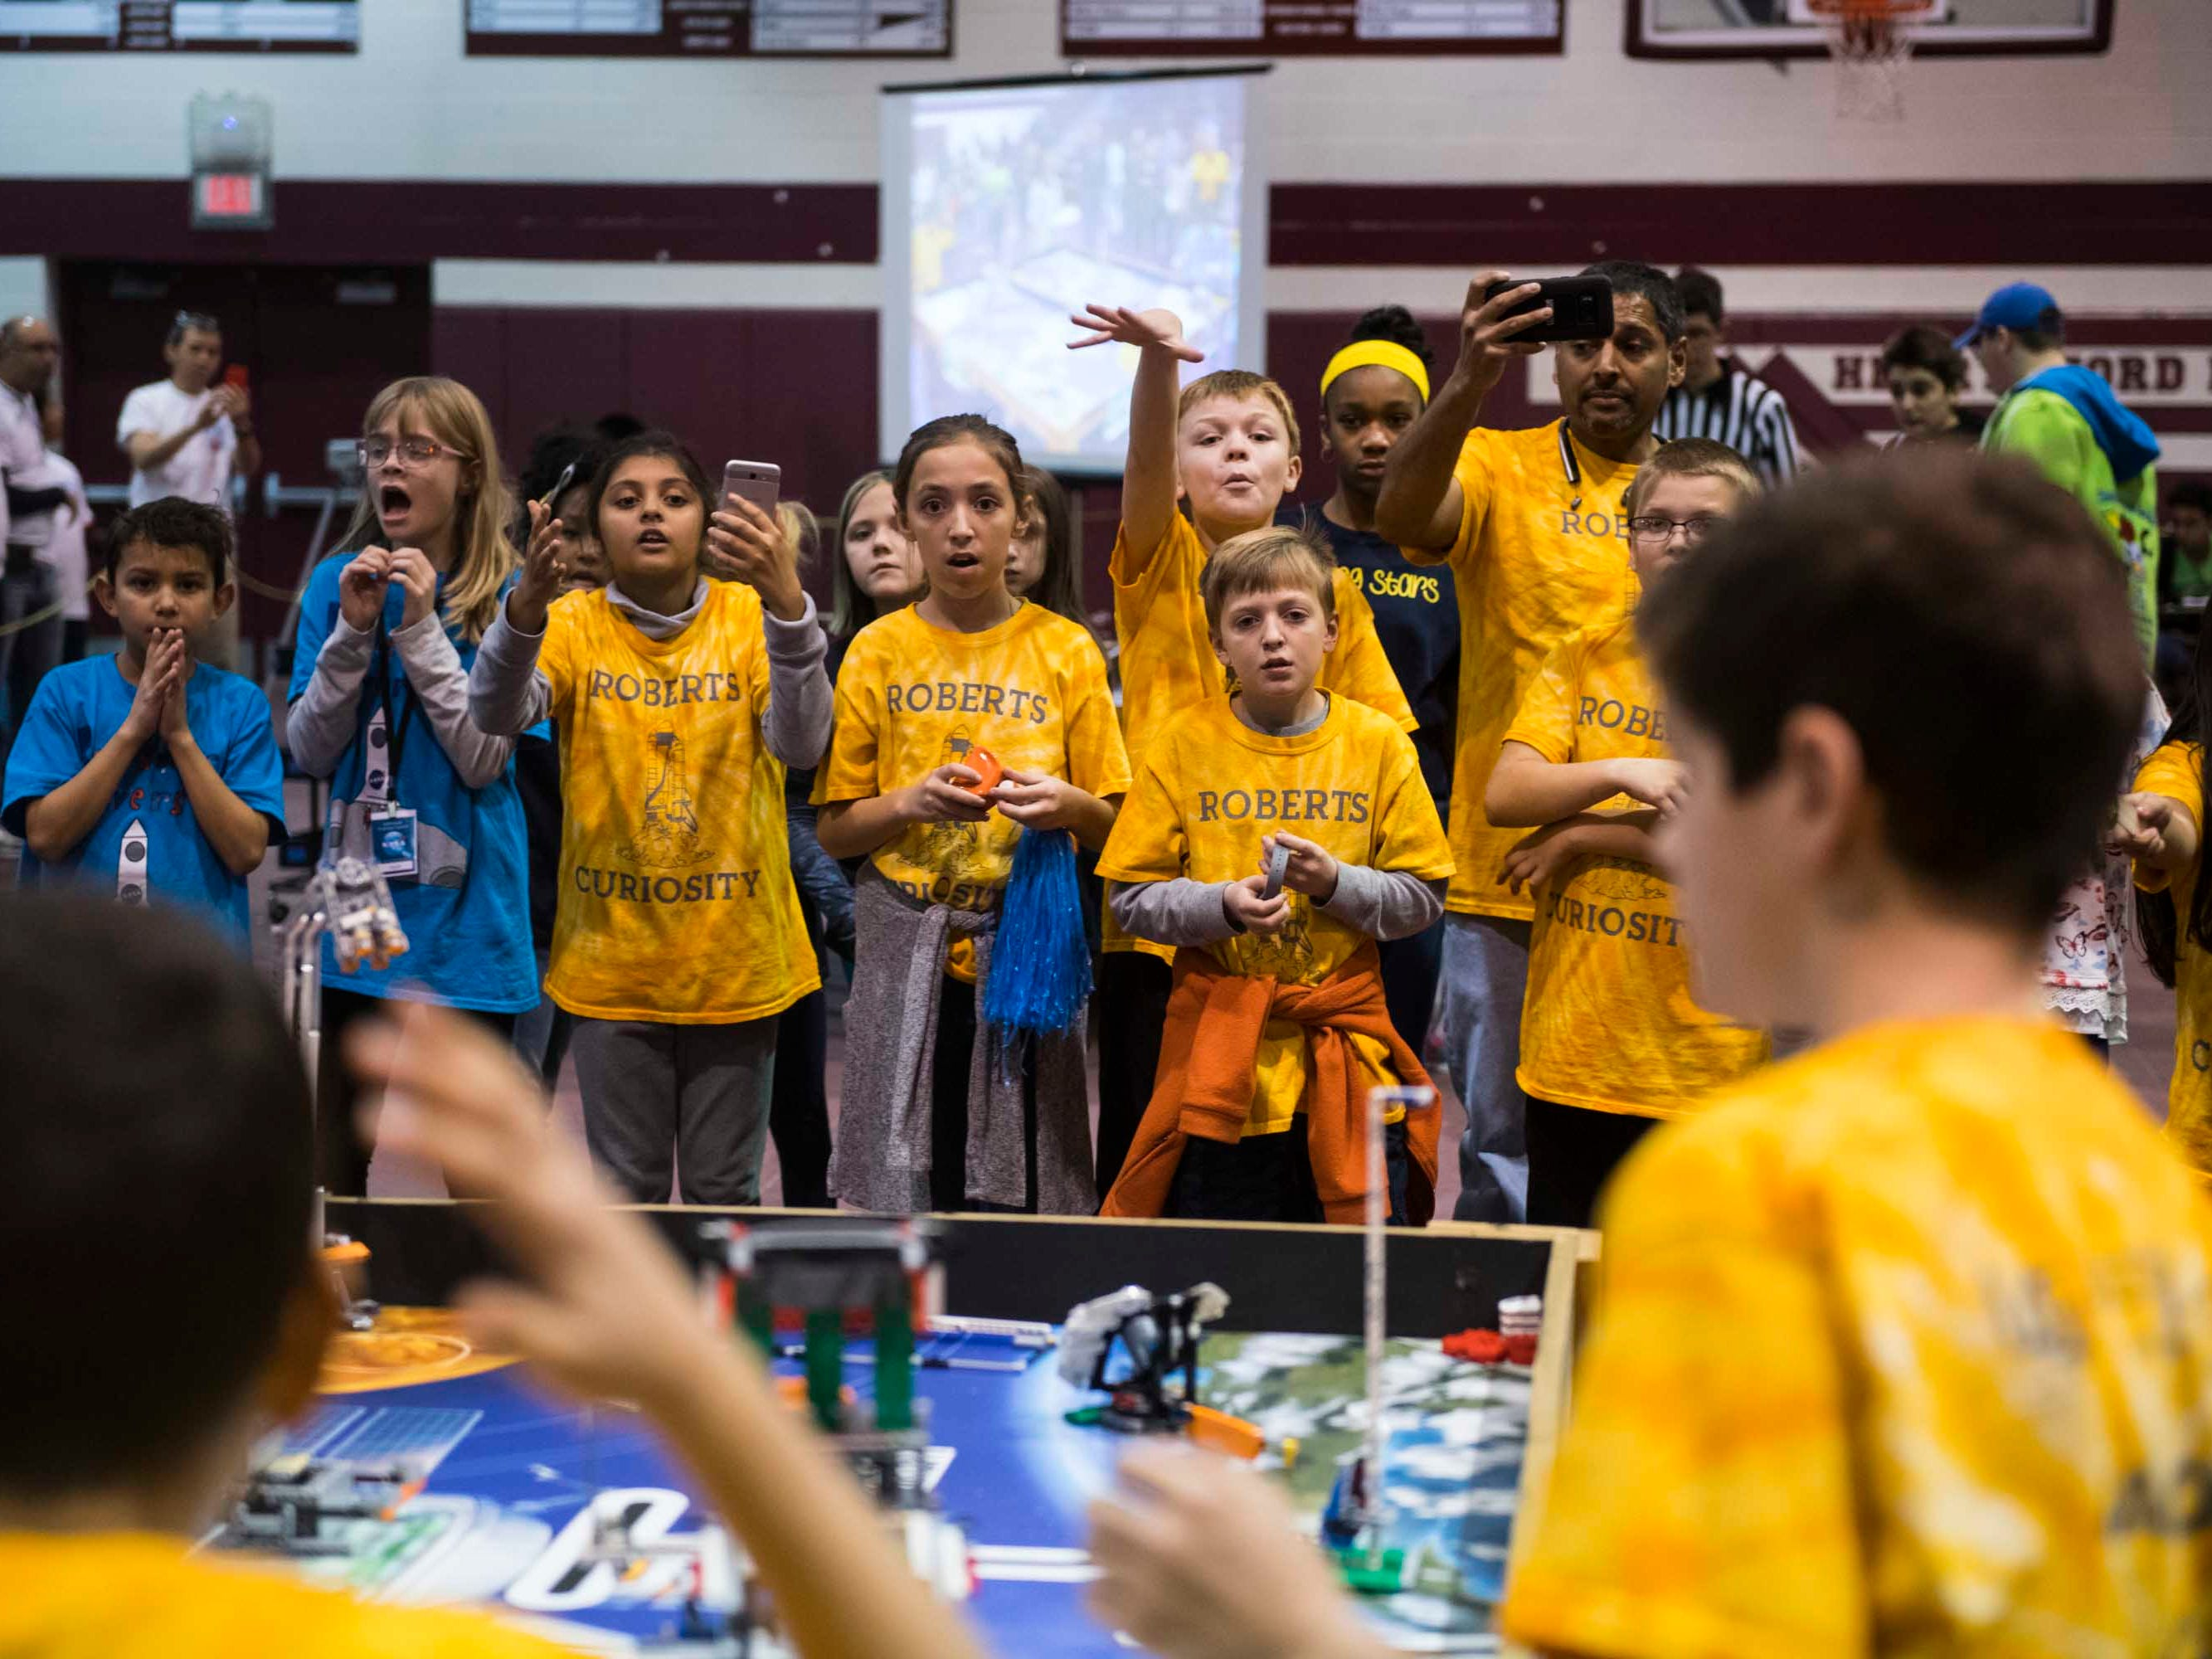 Members of the Roberts Curiosity robotics team cheer for their teammates as they compete at ThunderQuest.